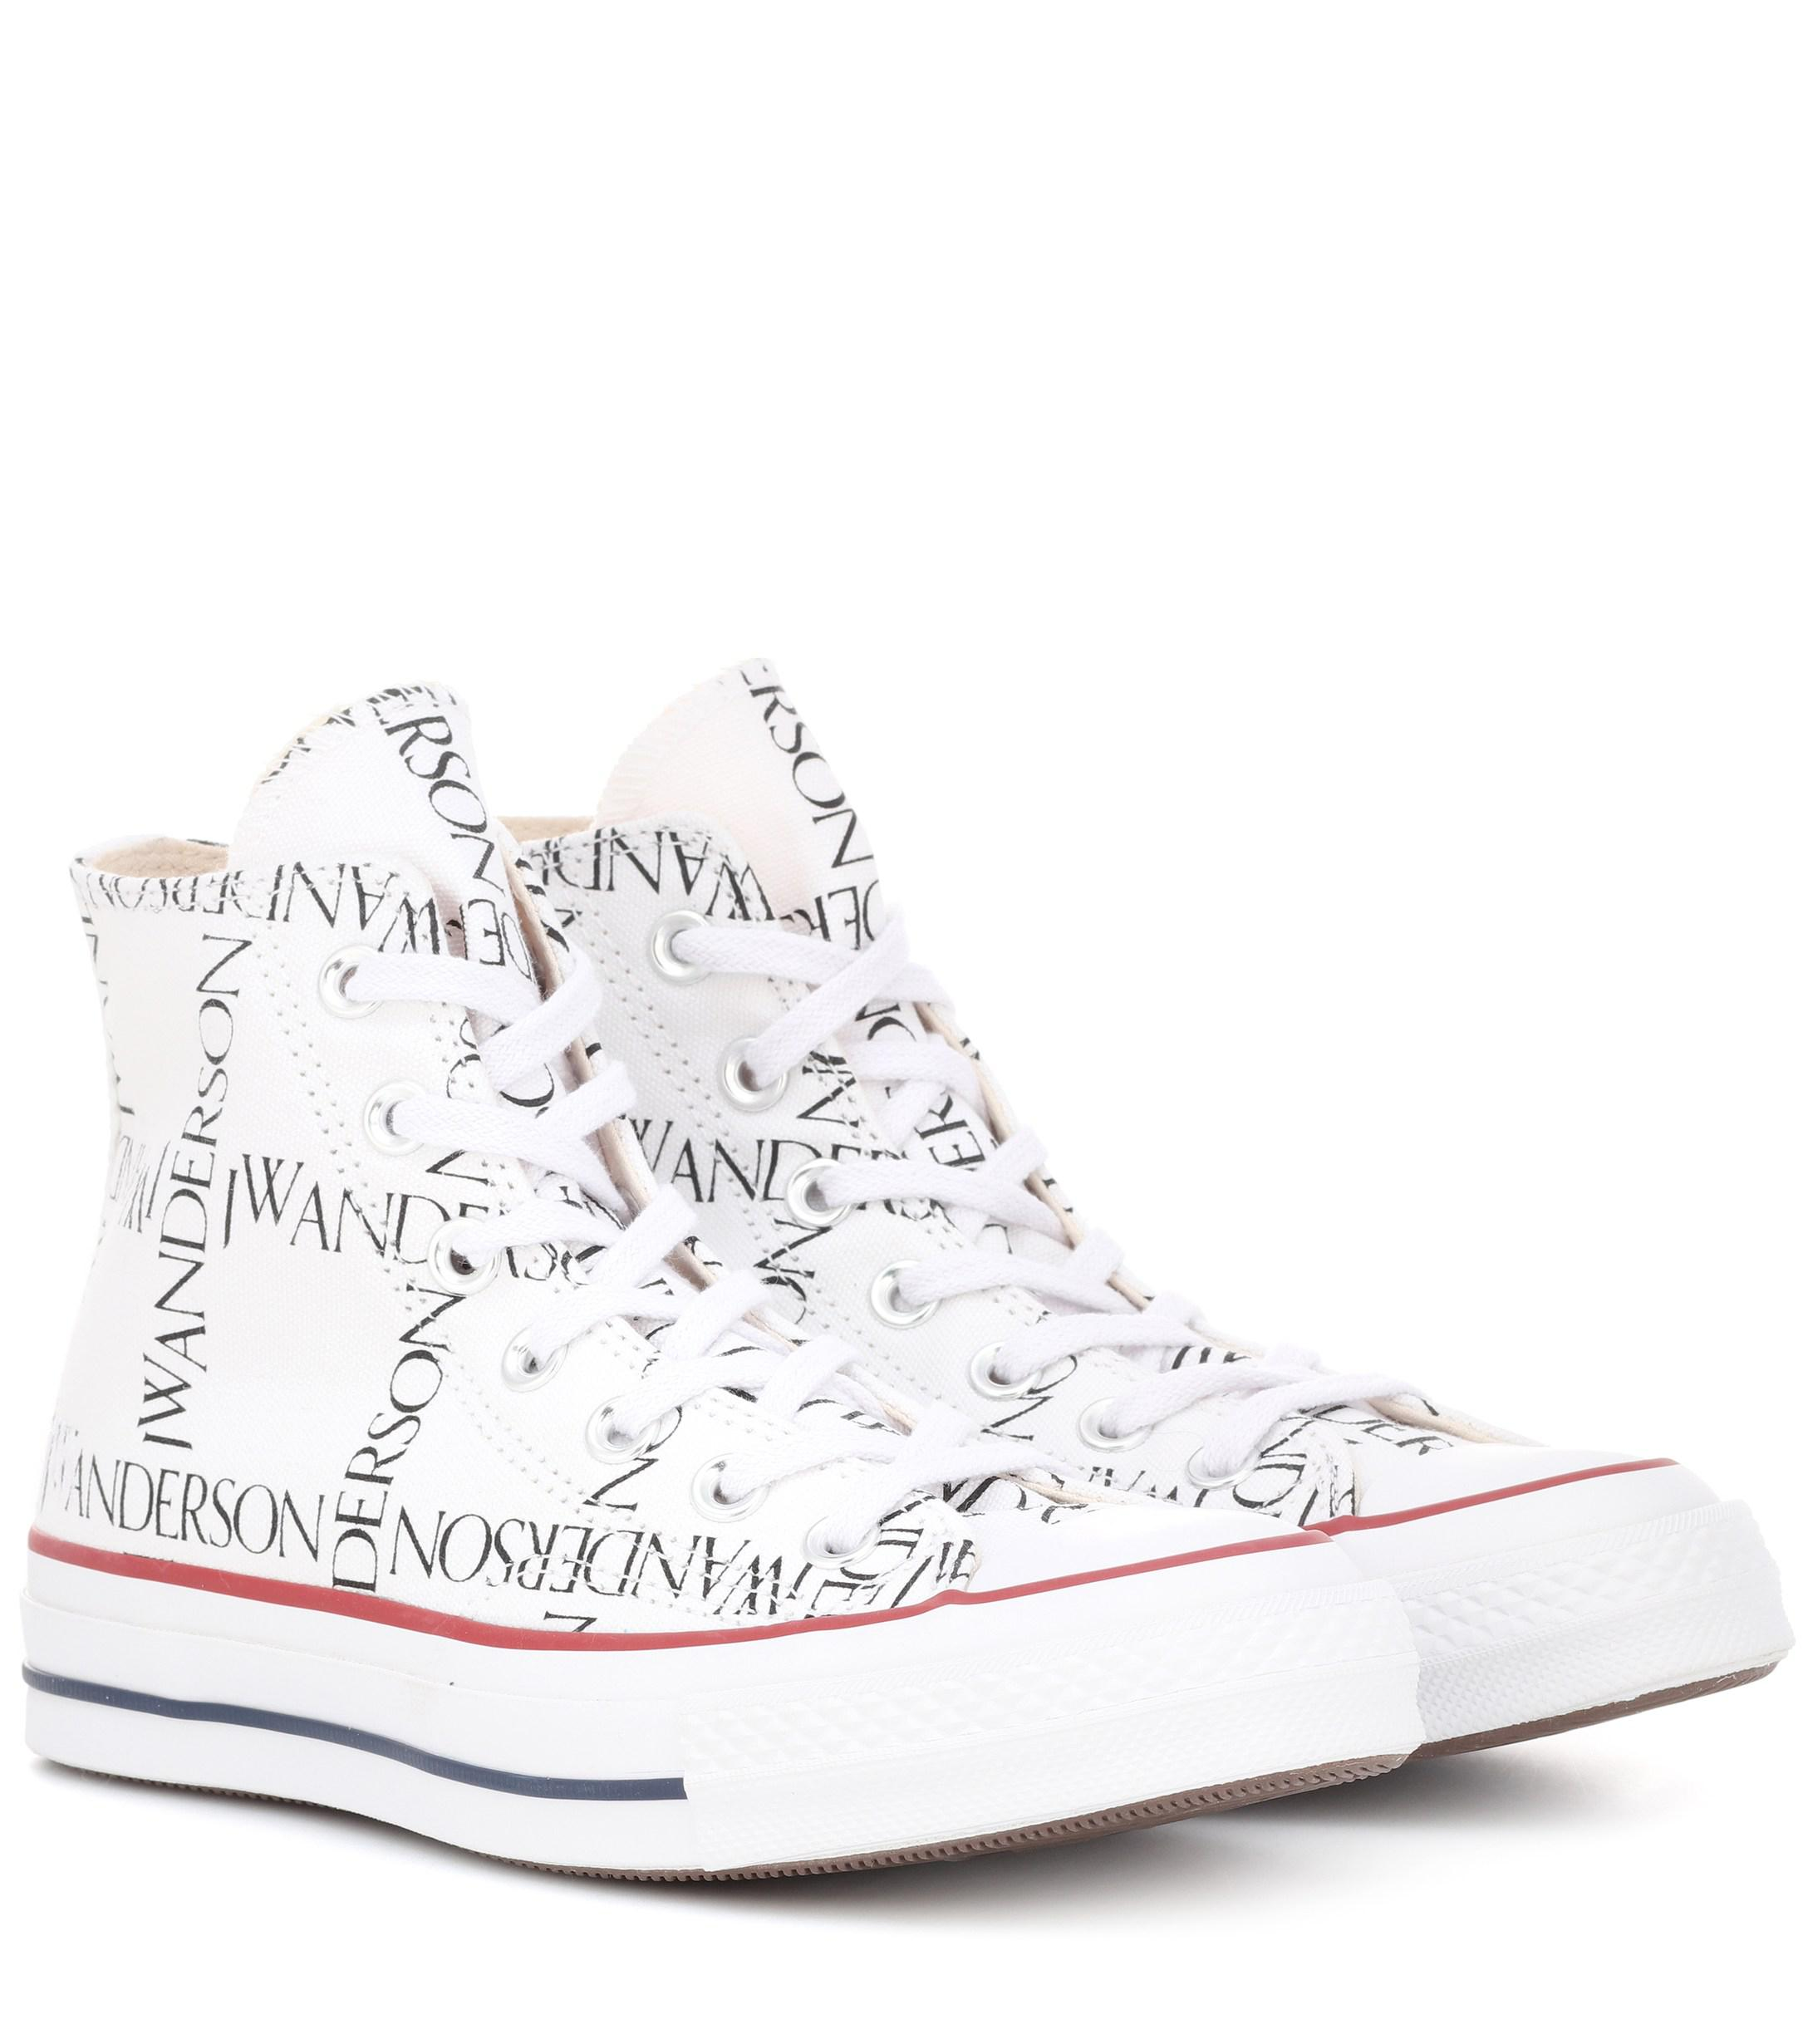 Lyst - J.W. Anderson X Converse Chuck 70 Logo-print Sneakers in White a5035f0c7